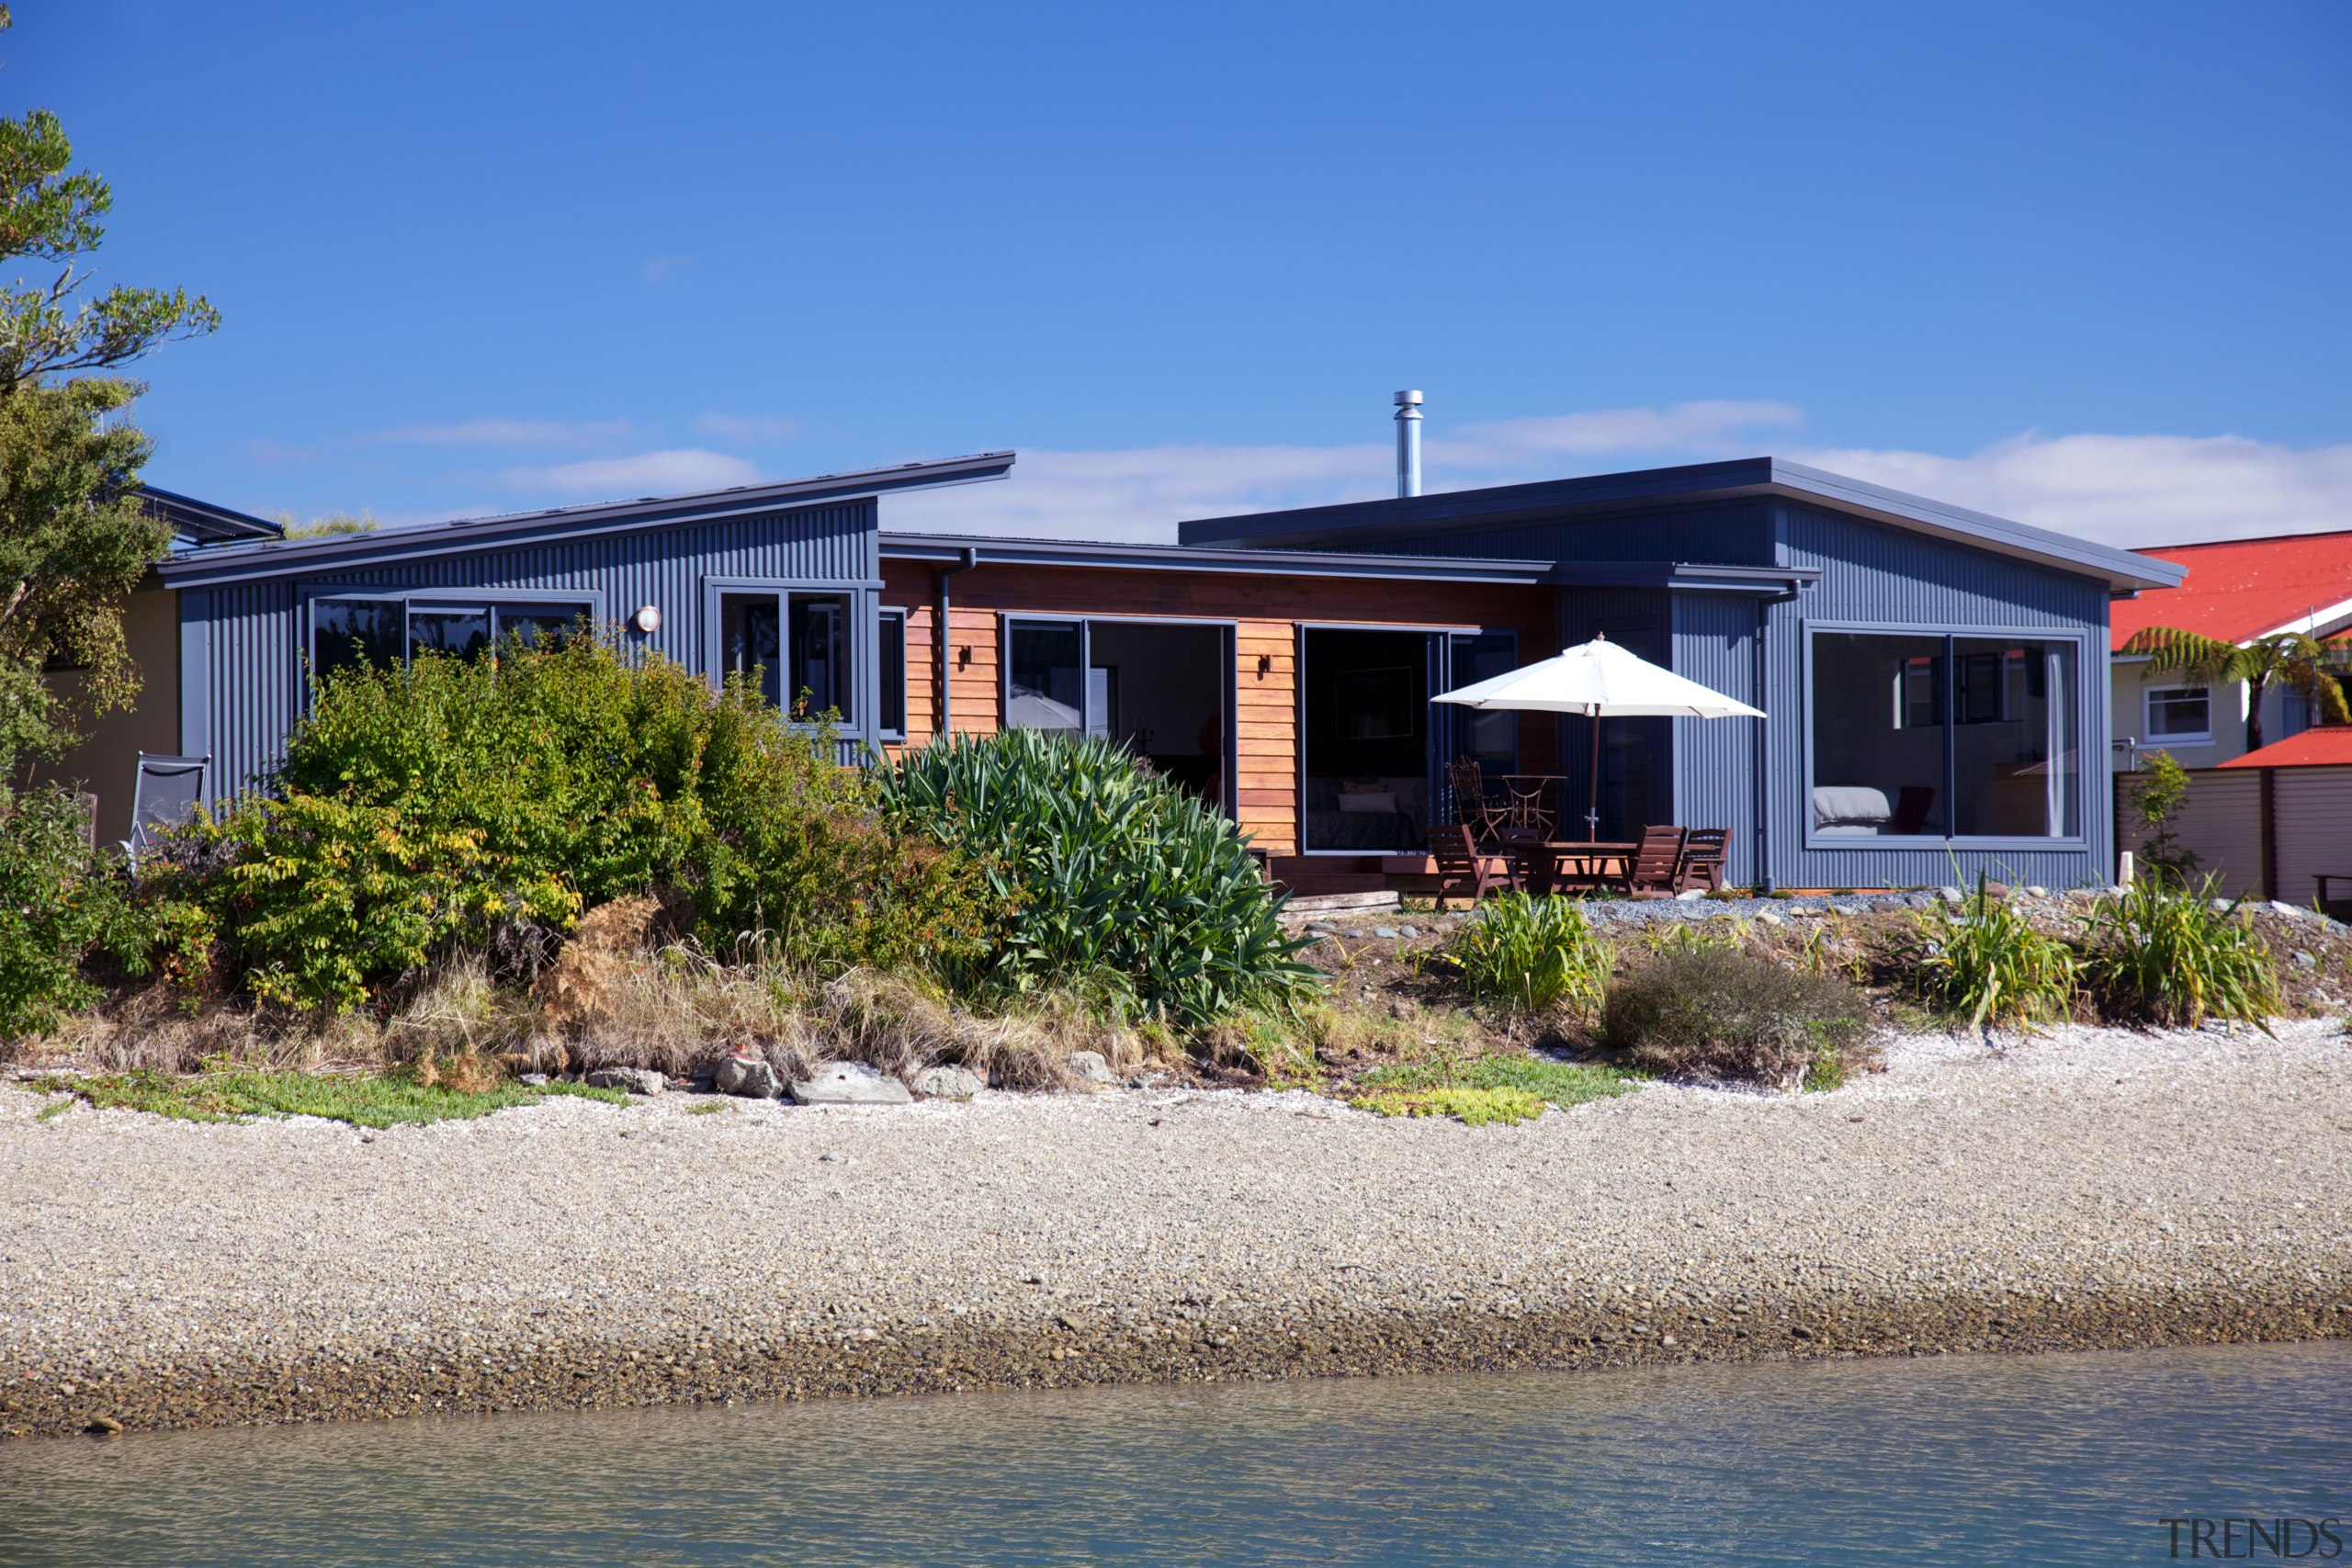 Nestled among the trees on the shoreline at architecture, cottage, estate, facade, home, house, property, real estate, residential area, villa, blue, gray